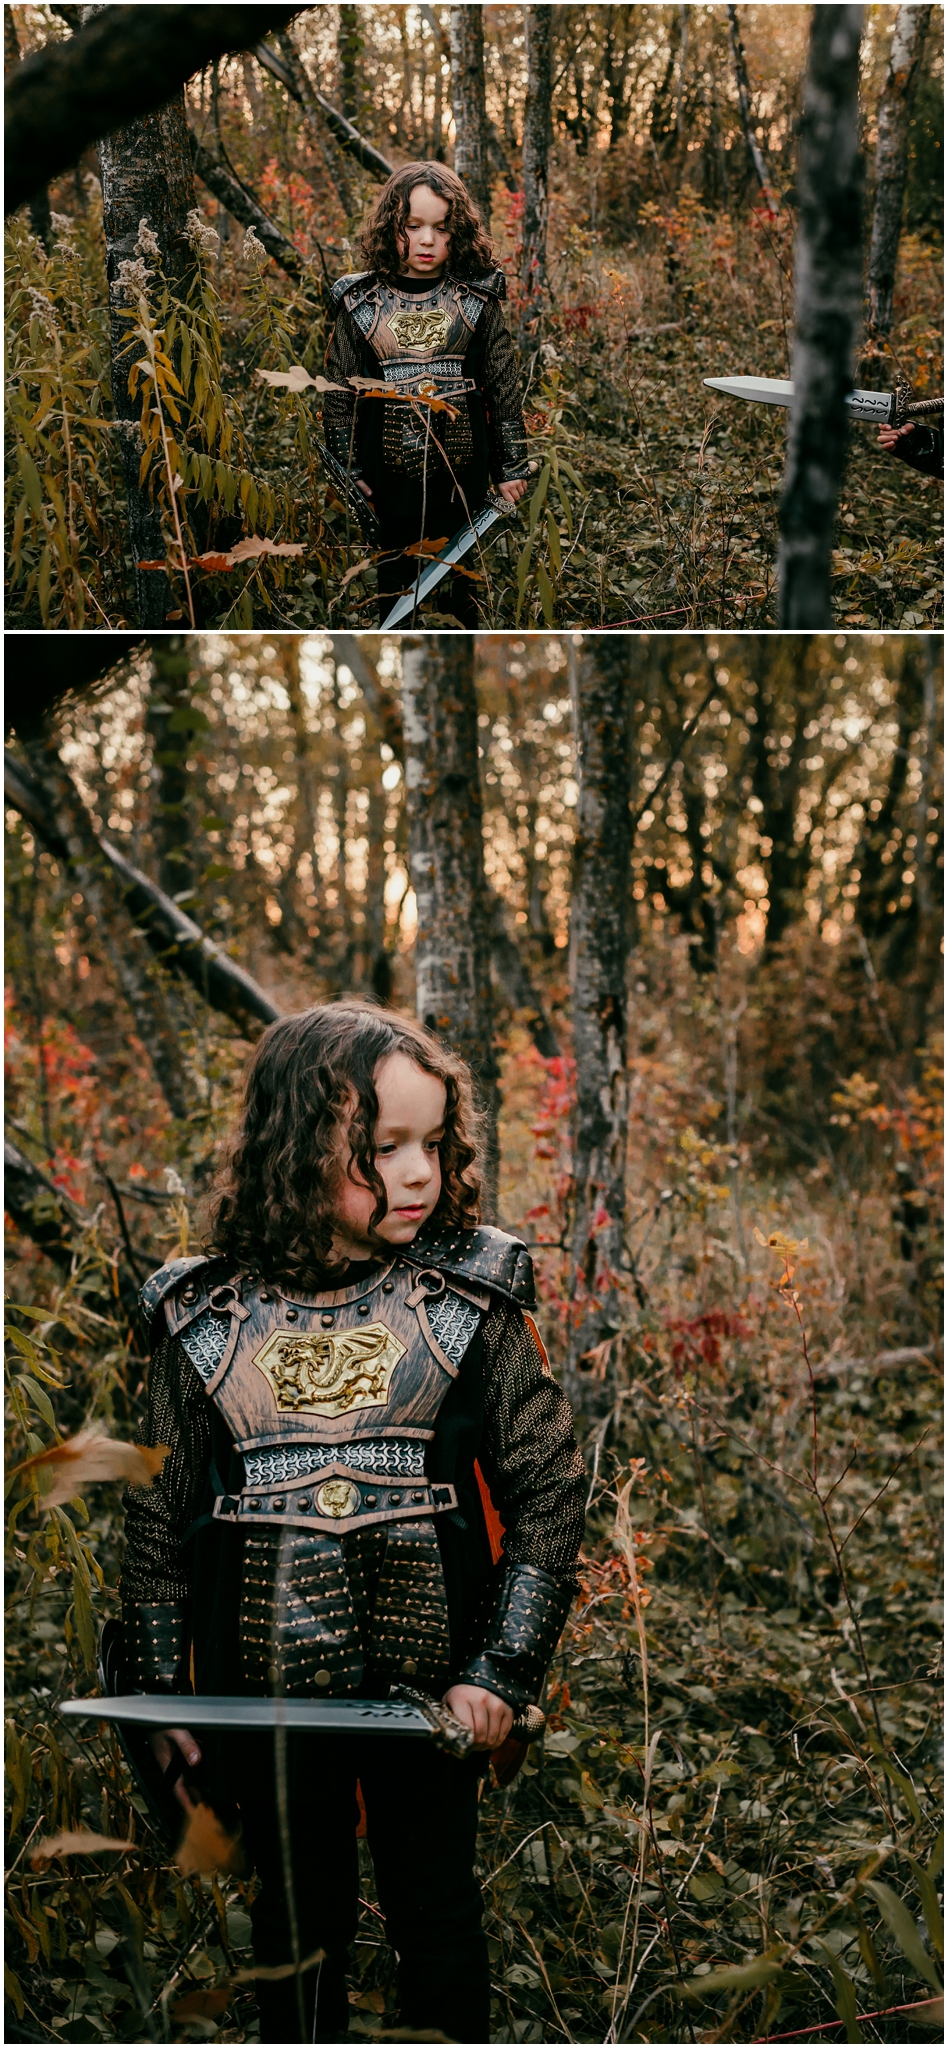 Edmonton Family Photographer - Treelines Photography - Edmonton Lifestyle Photographer - Halloween costumes - knight costumes